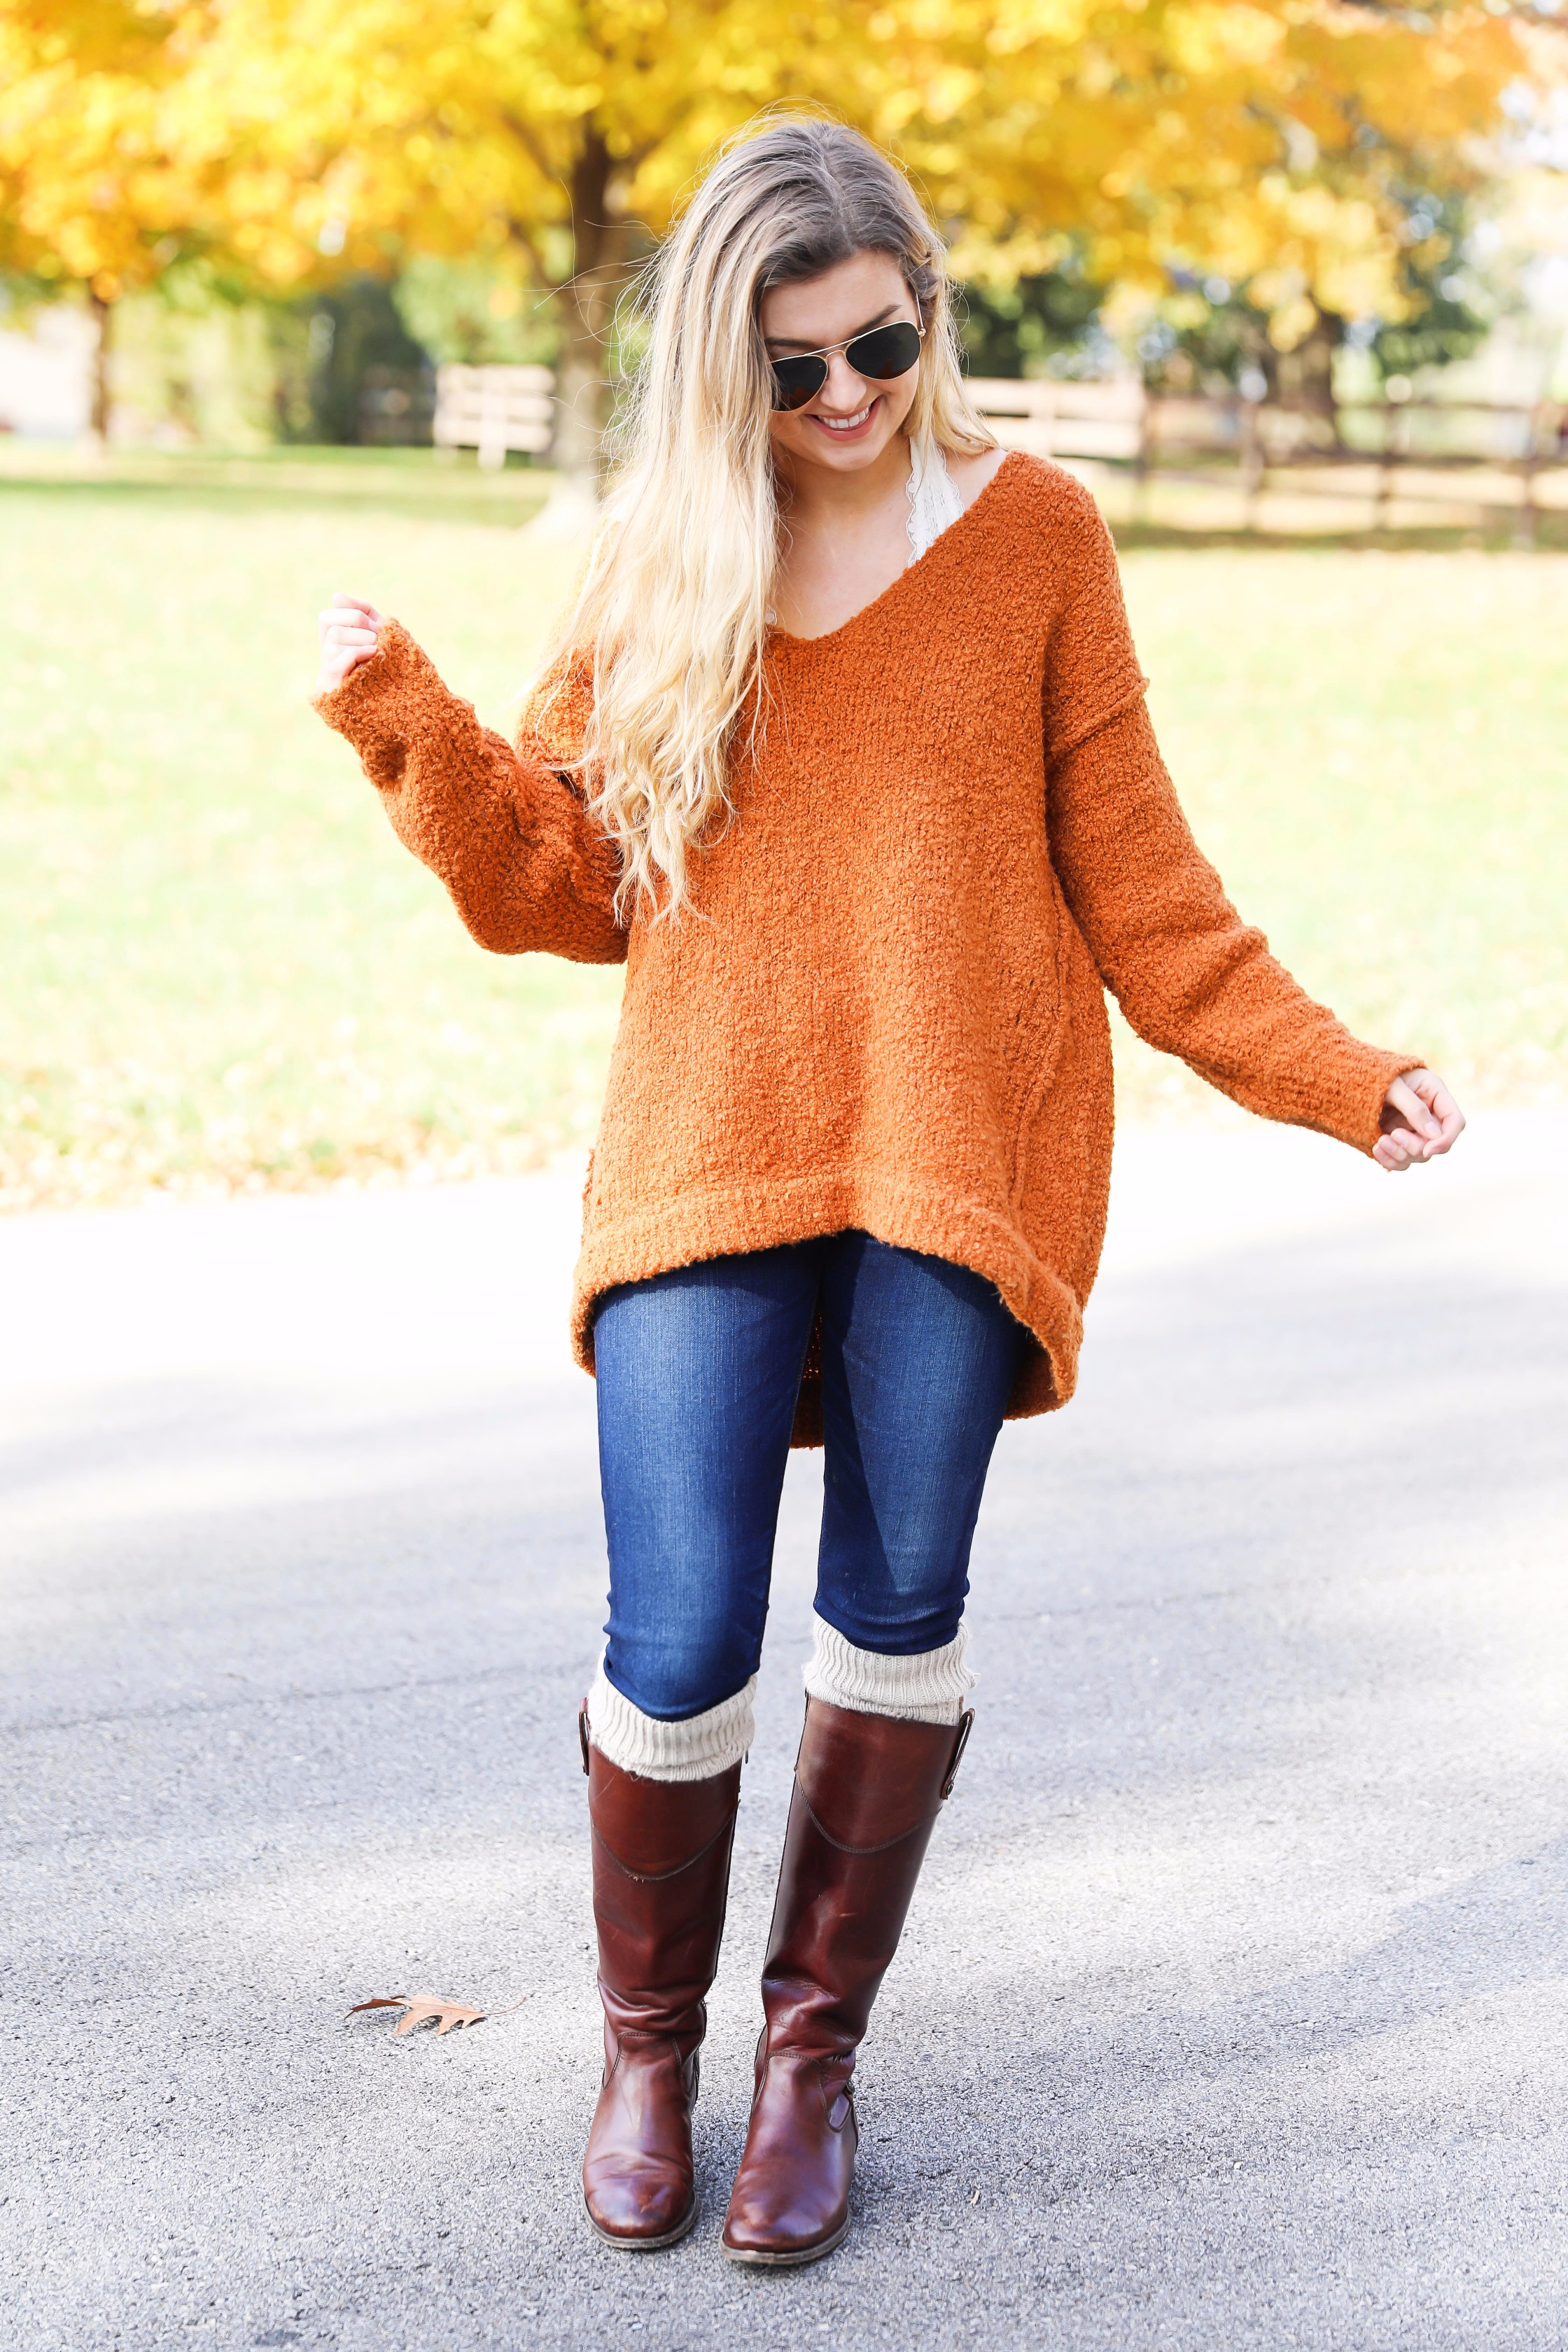 44152254c09 Thanksgiving Outfit Ideas on Fashion Blog Daily Dose of Charm by Lauren  Lindmark